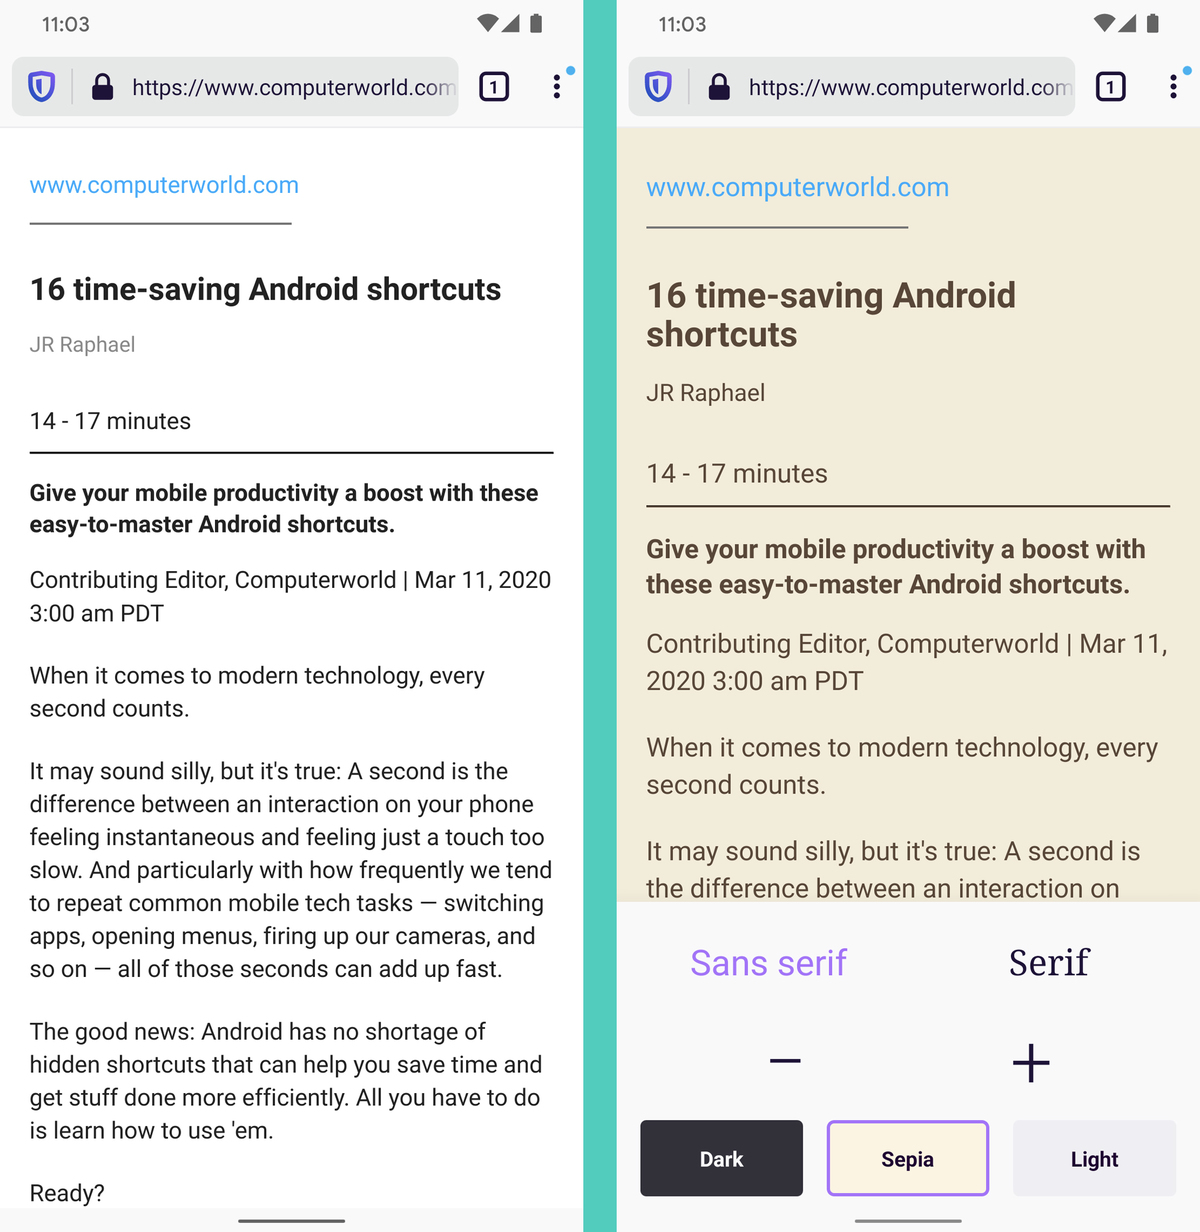 Firefox Android reader view